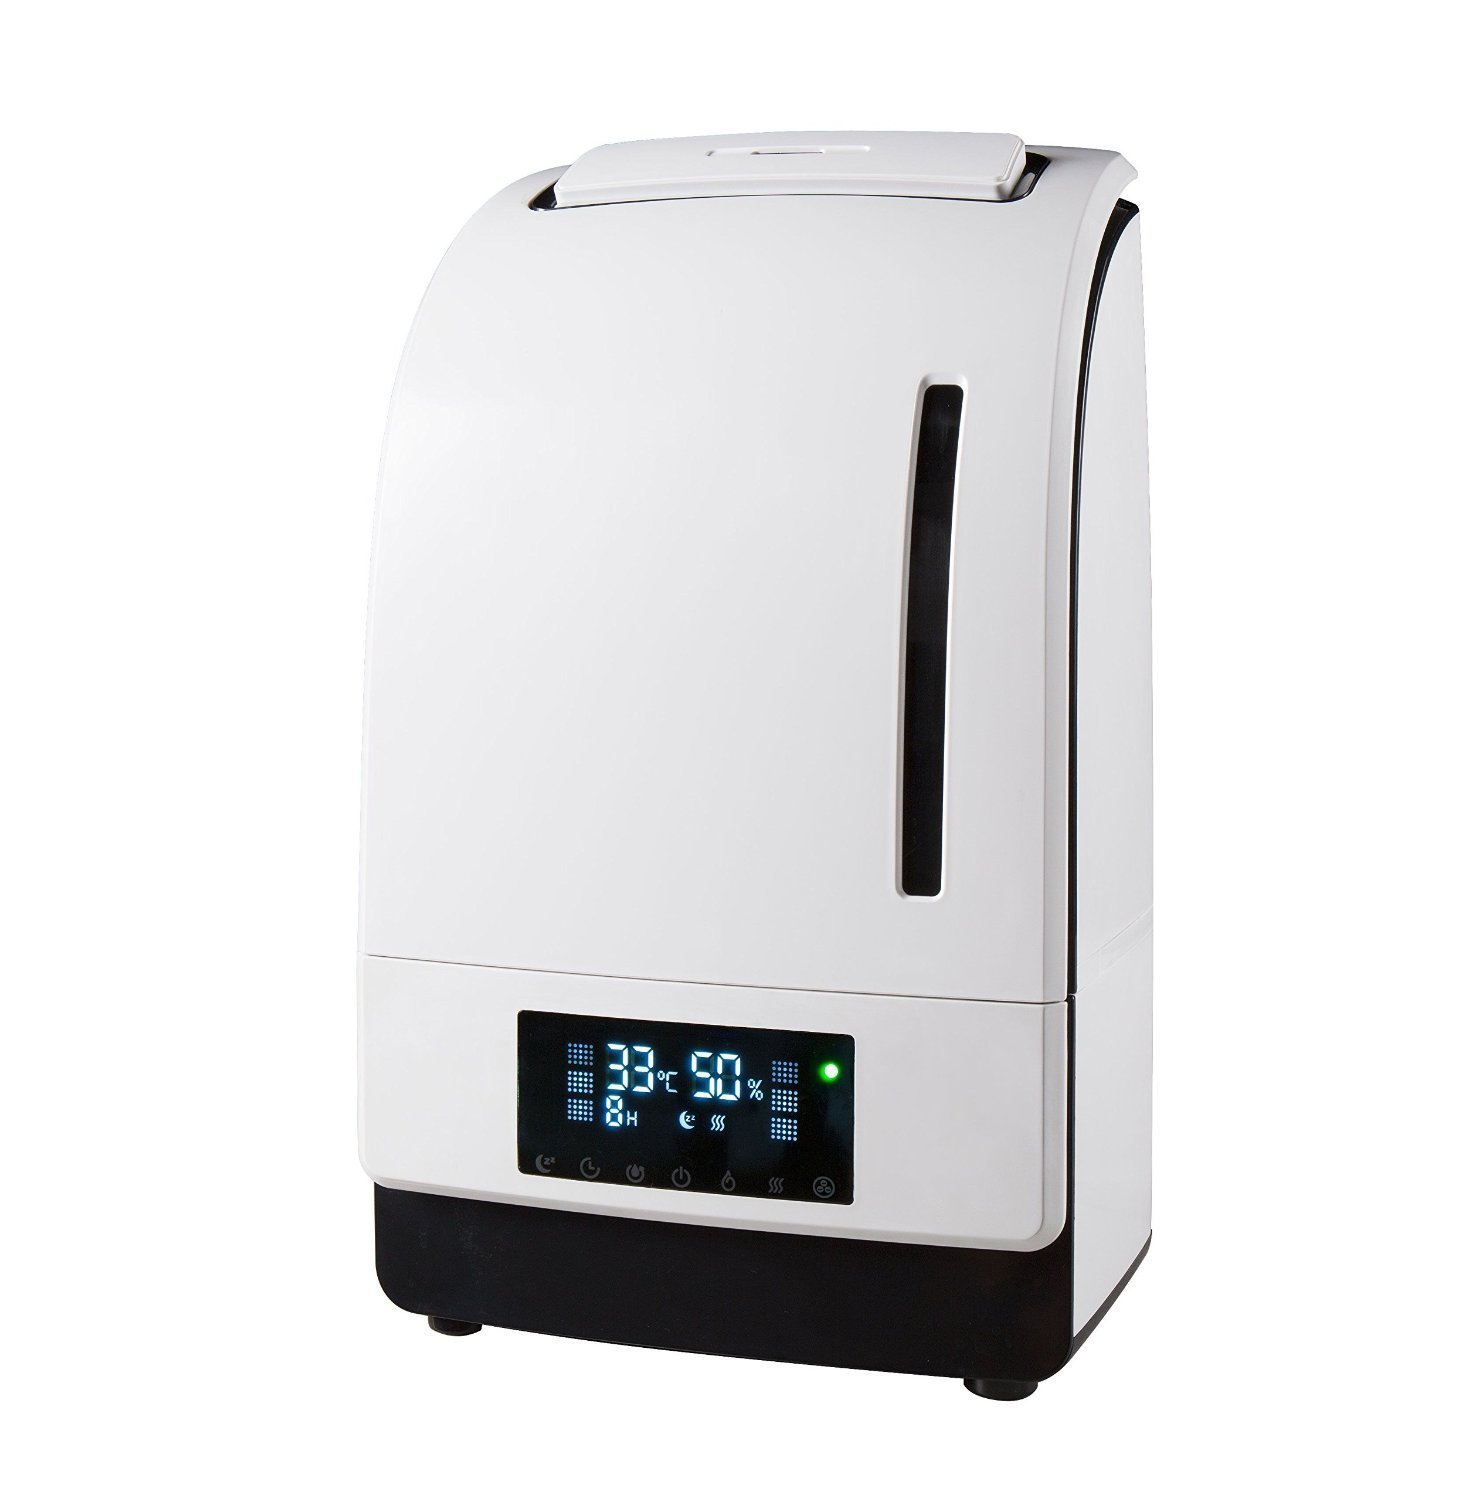 Digital 4500 Ultrasonic Cool & Warm Mist Humidifier-High Frequency Vibrations 1.7 MHz